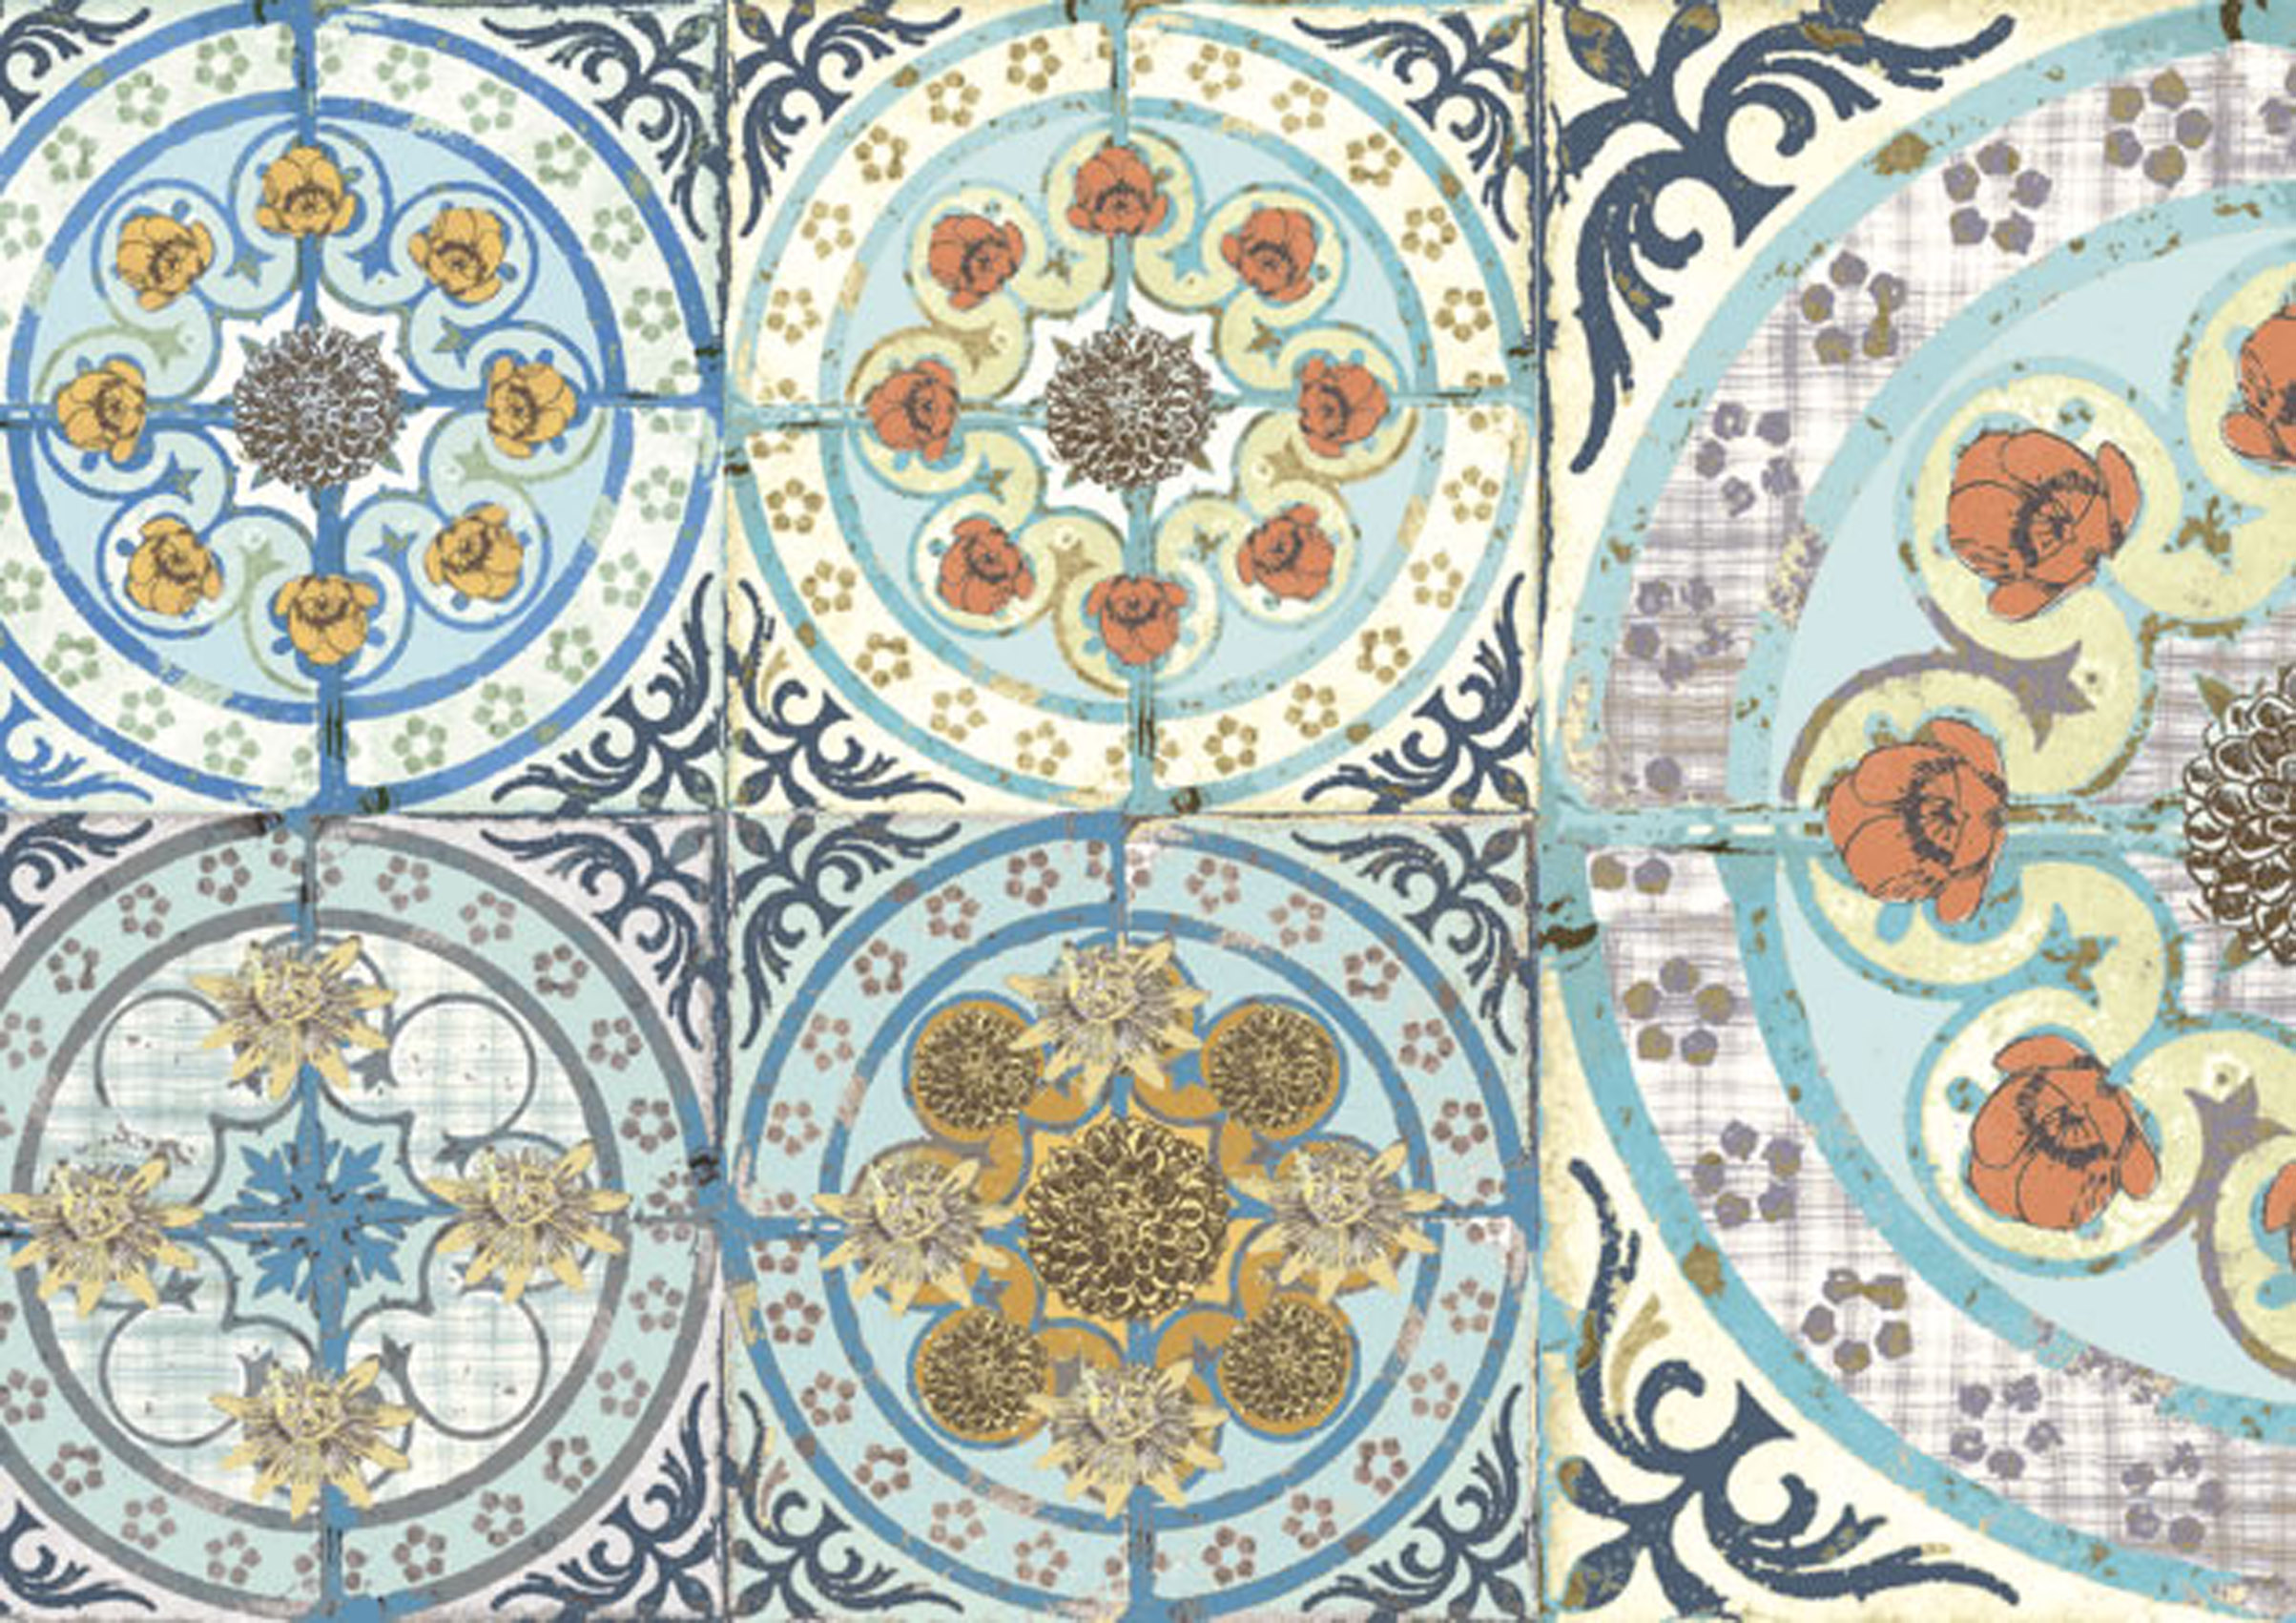 They incorporate original Victorian tile designs enhanced with Louise 2407x1701